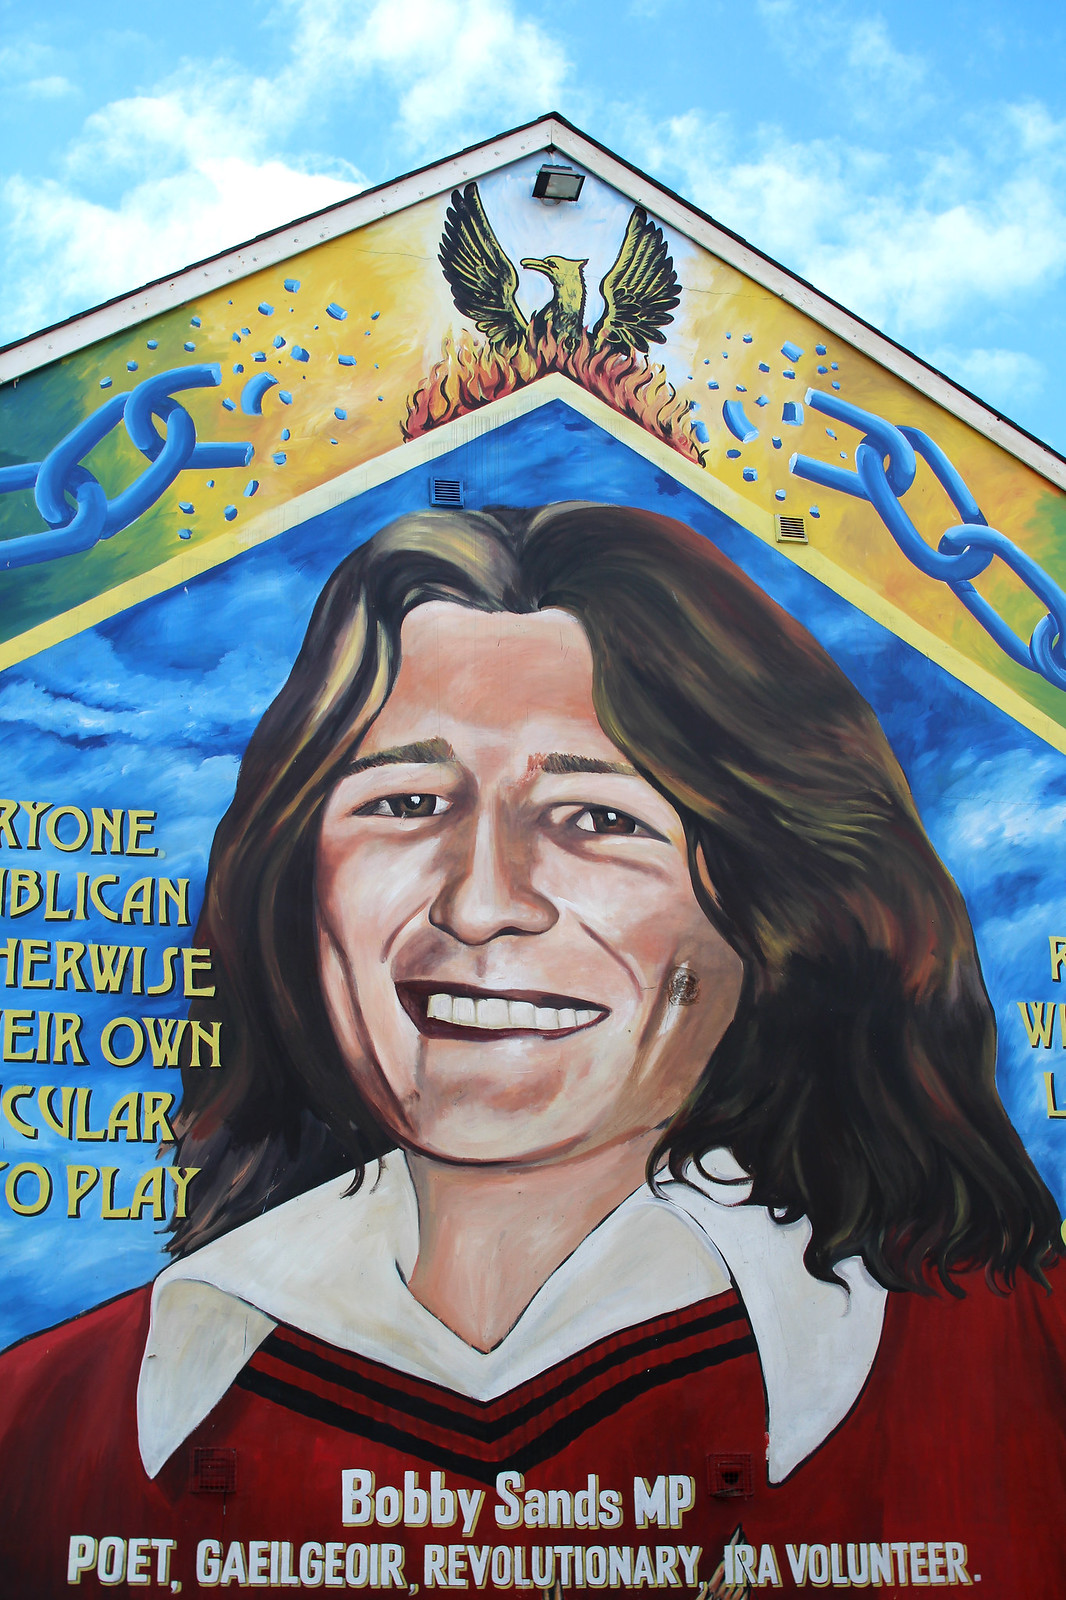 Troubles Taxi Tour murals Belfast 48 hour guide travel blogger UK Northern Ireland